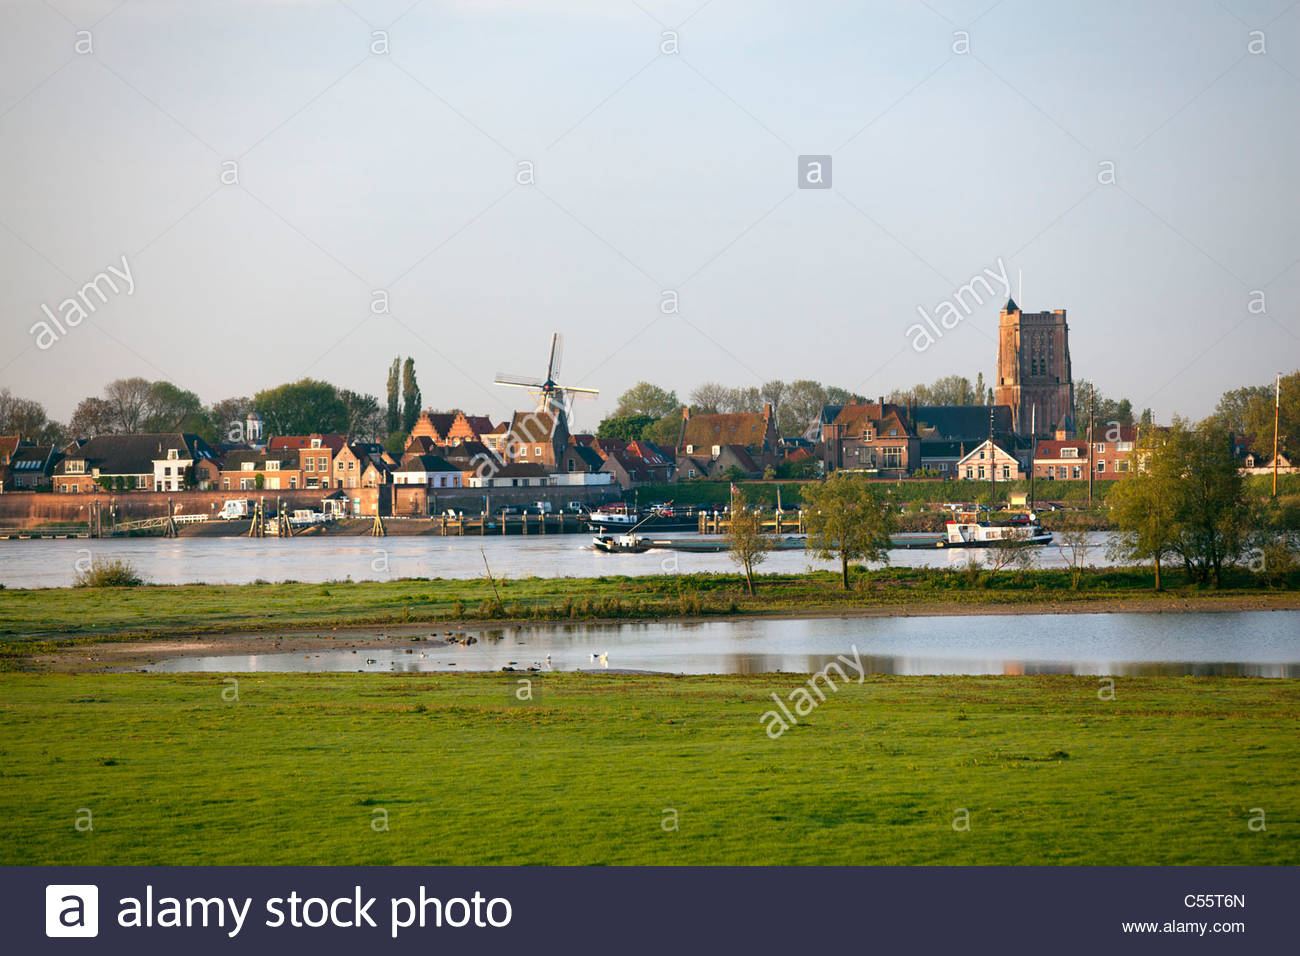 The Netherlands, Woudrichem, Skyline and cargo ship in river called Maas. - Stock Image